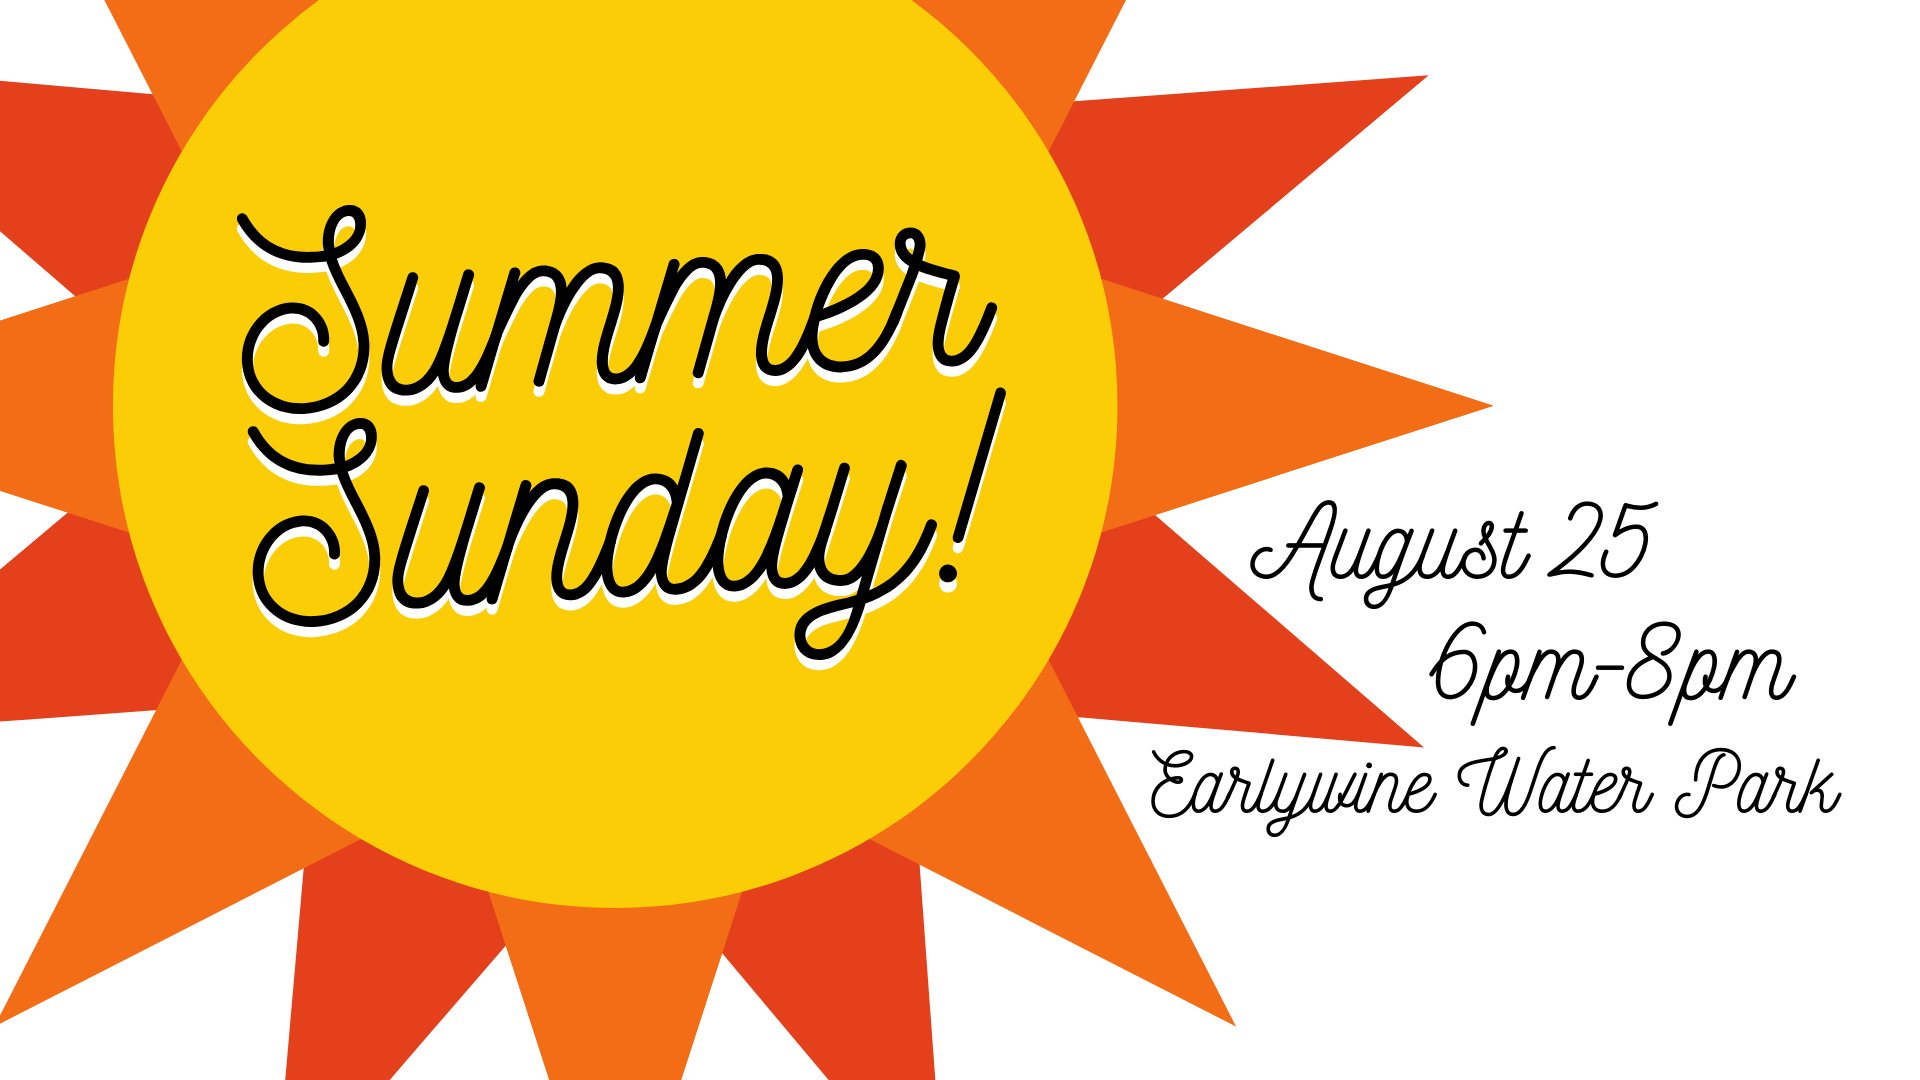 Join us for august summer sunday! - 6-8pm at Earlywine Water Park. Concessions available for purchase.